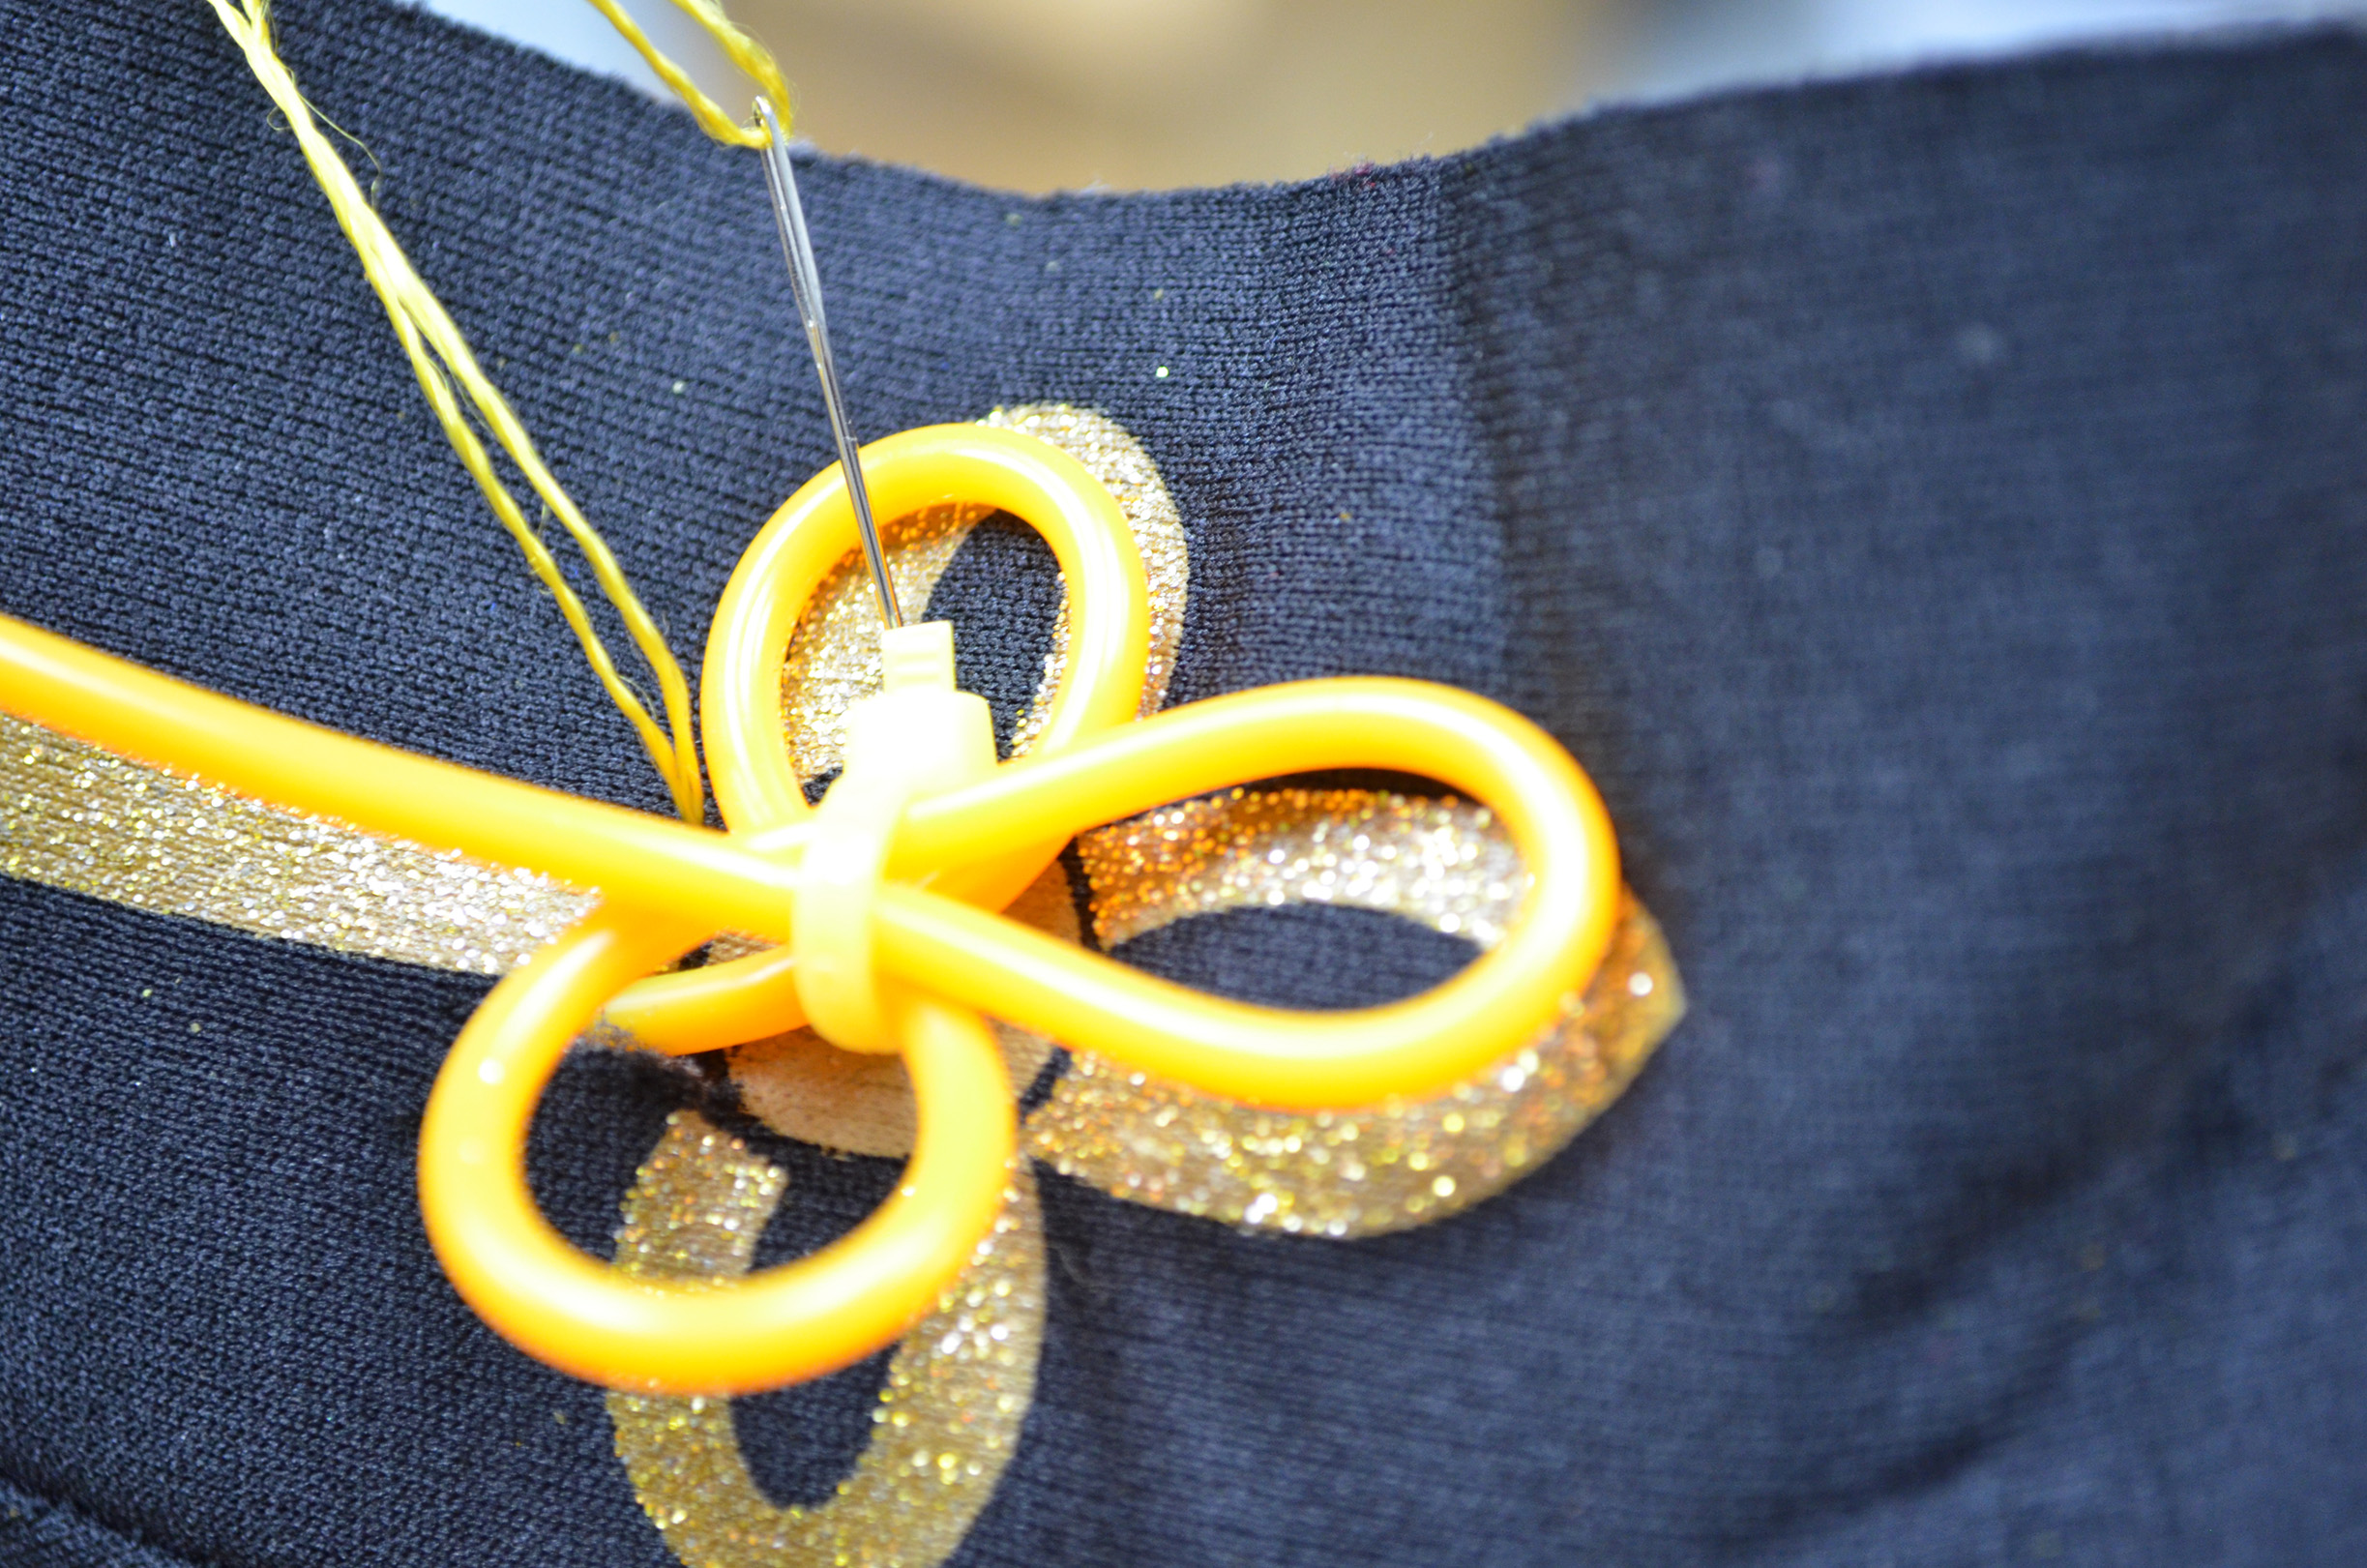 Picture of Sew the EL Wire Onto the Costume